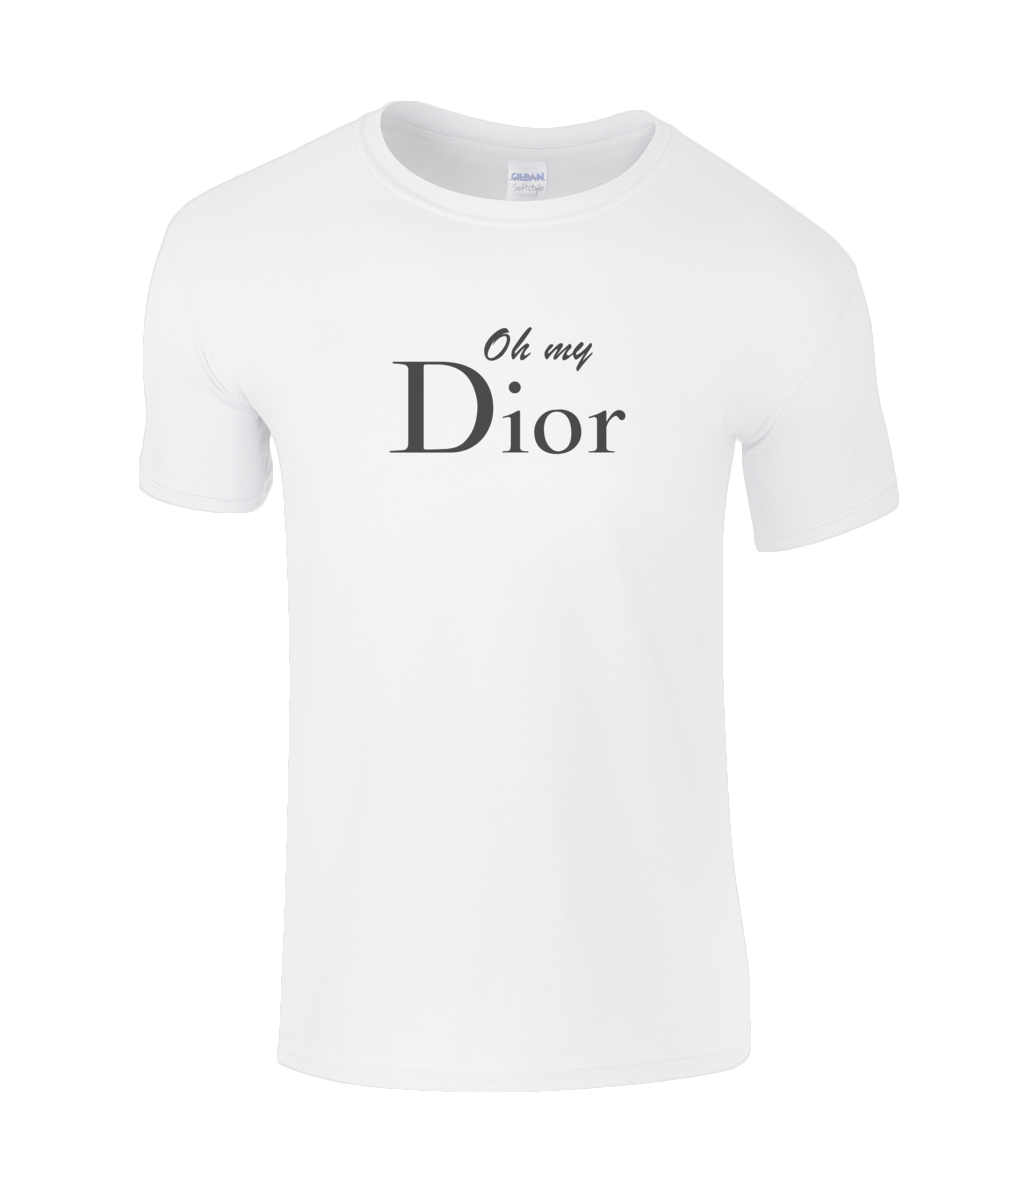 Oh my Dior Kids T-Shirt